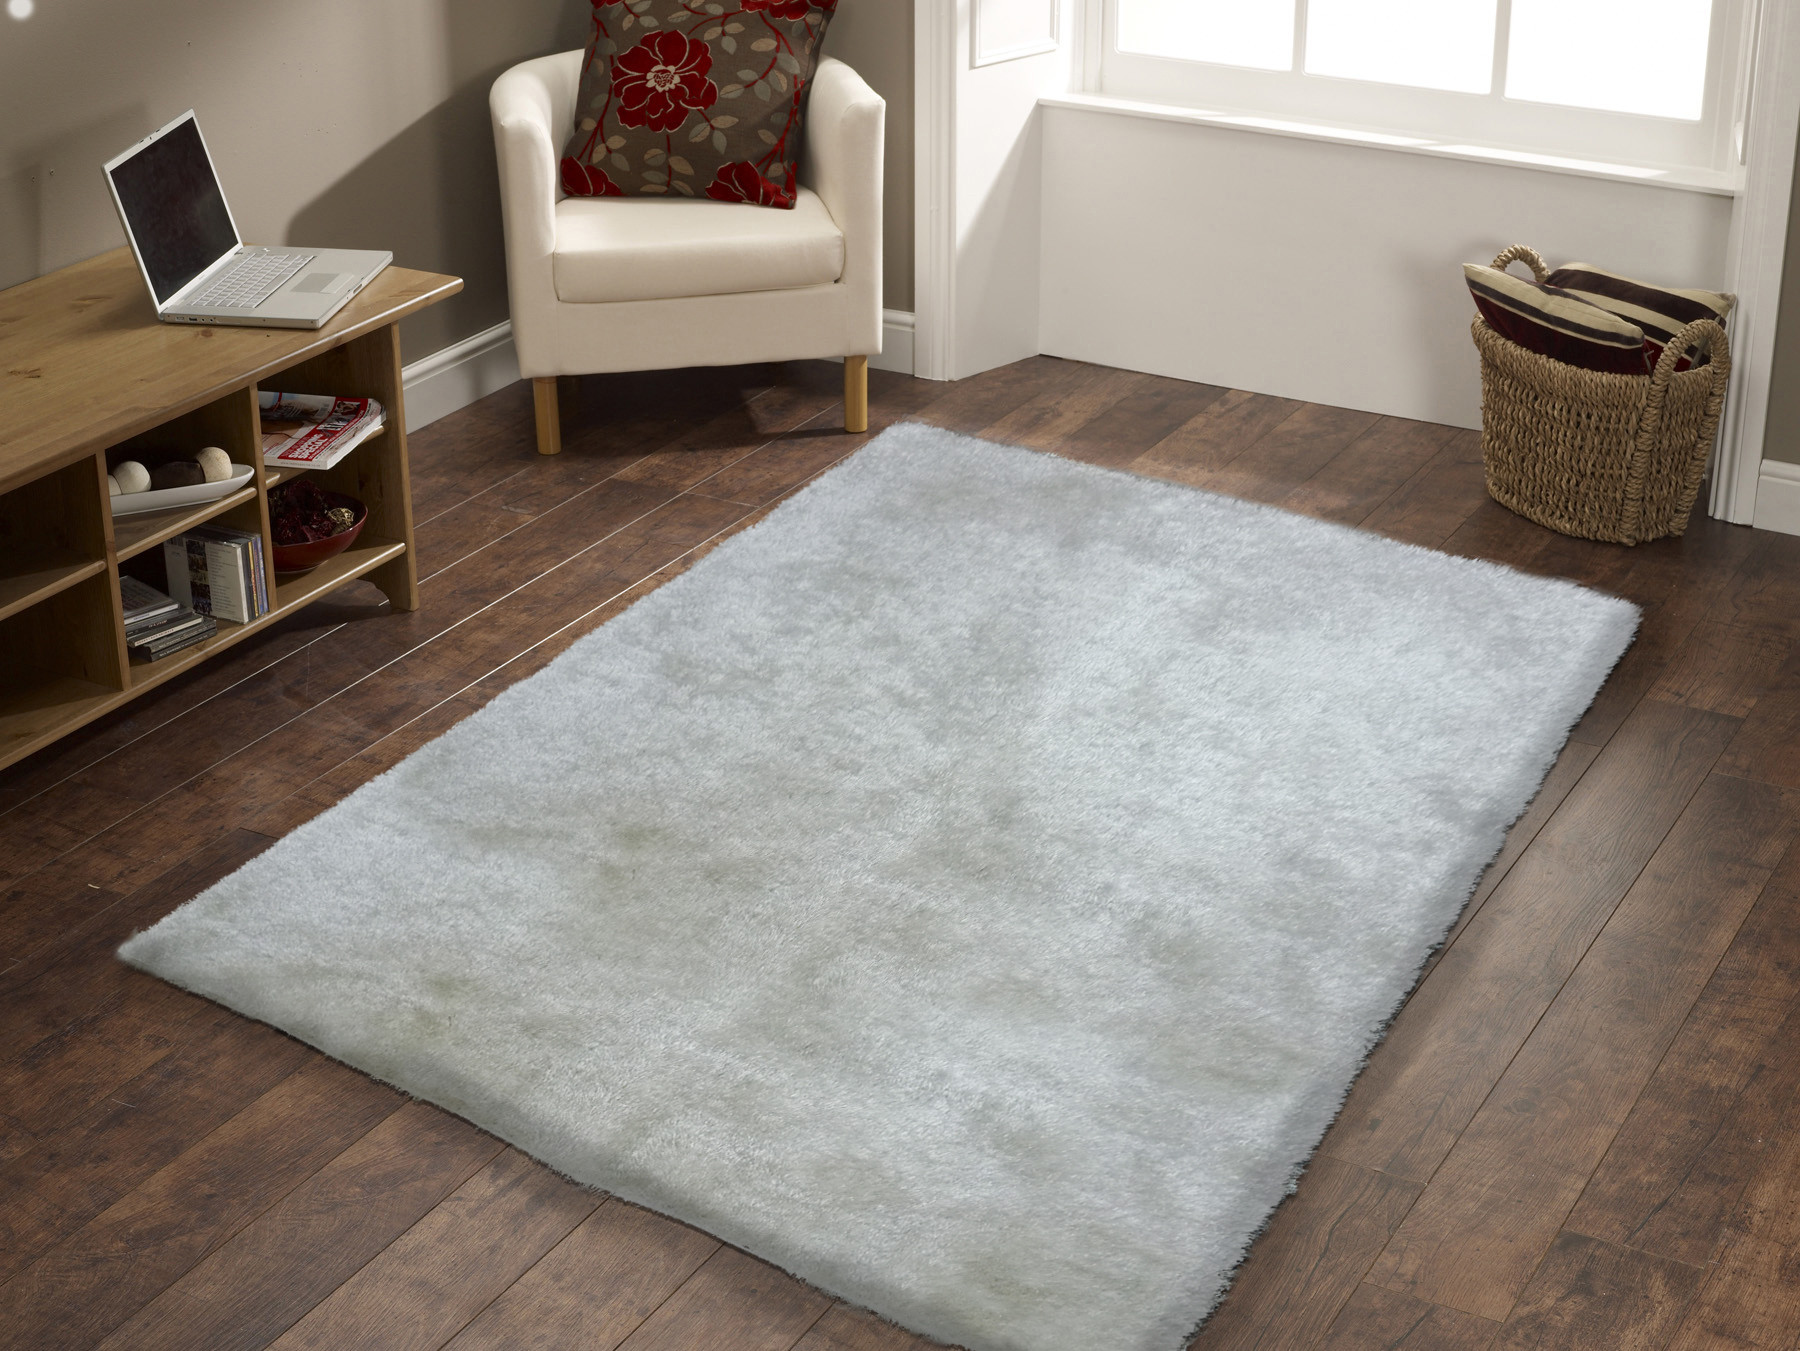 Pictures of Handmade White Solid Soft u0026 Fuzzy Shag Area Rug 5u0027 x 7u0027 ft. white shag area rug